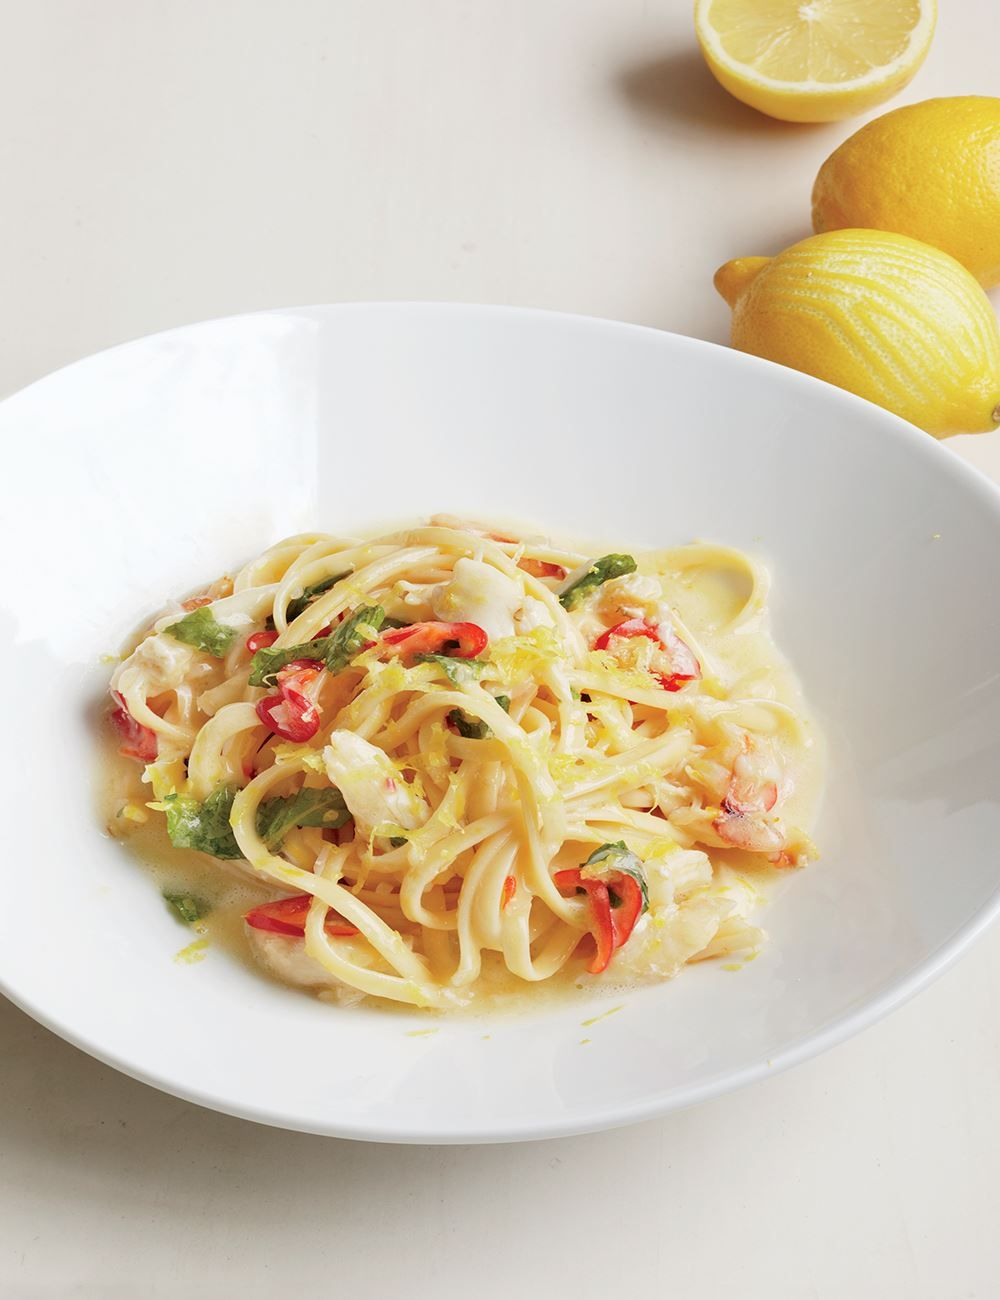 8 seafood pasta recipes with crab, anchovy, lobster and more